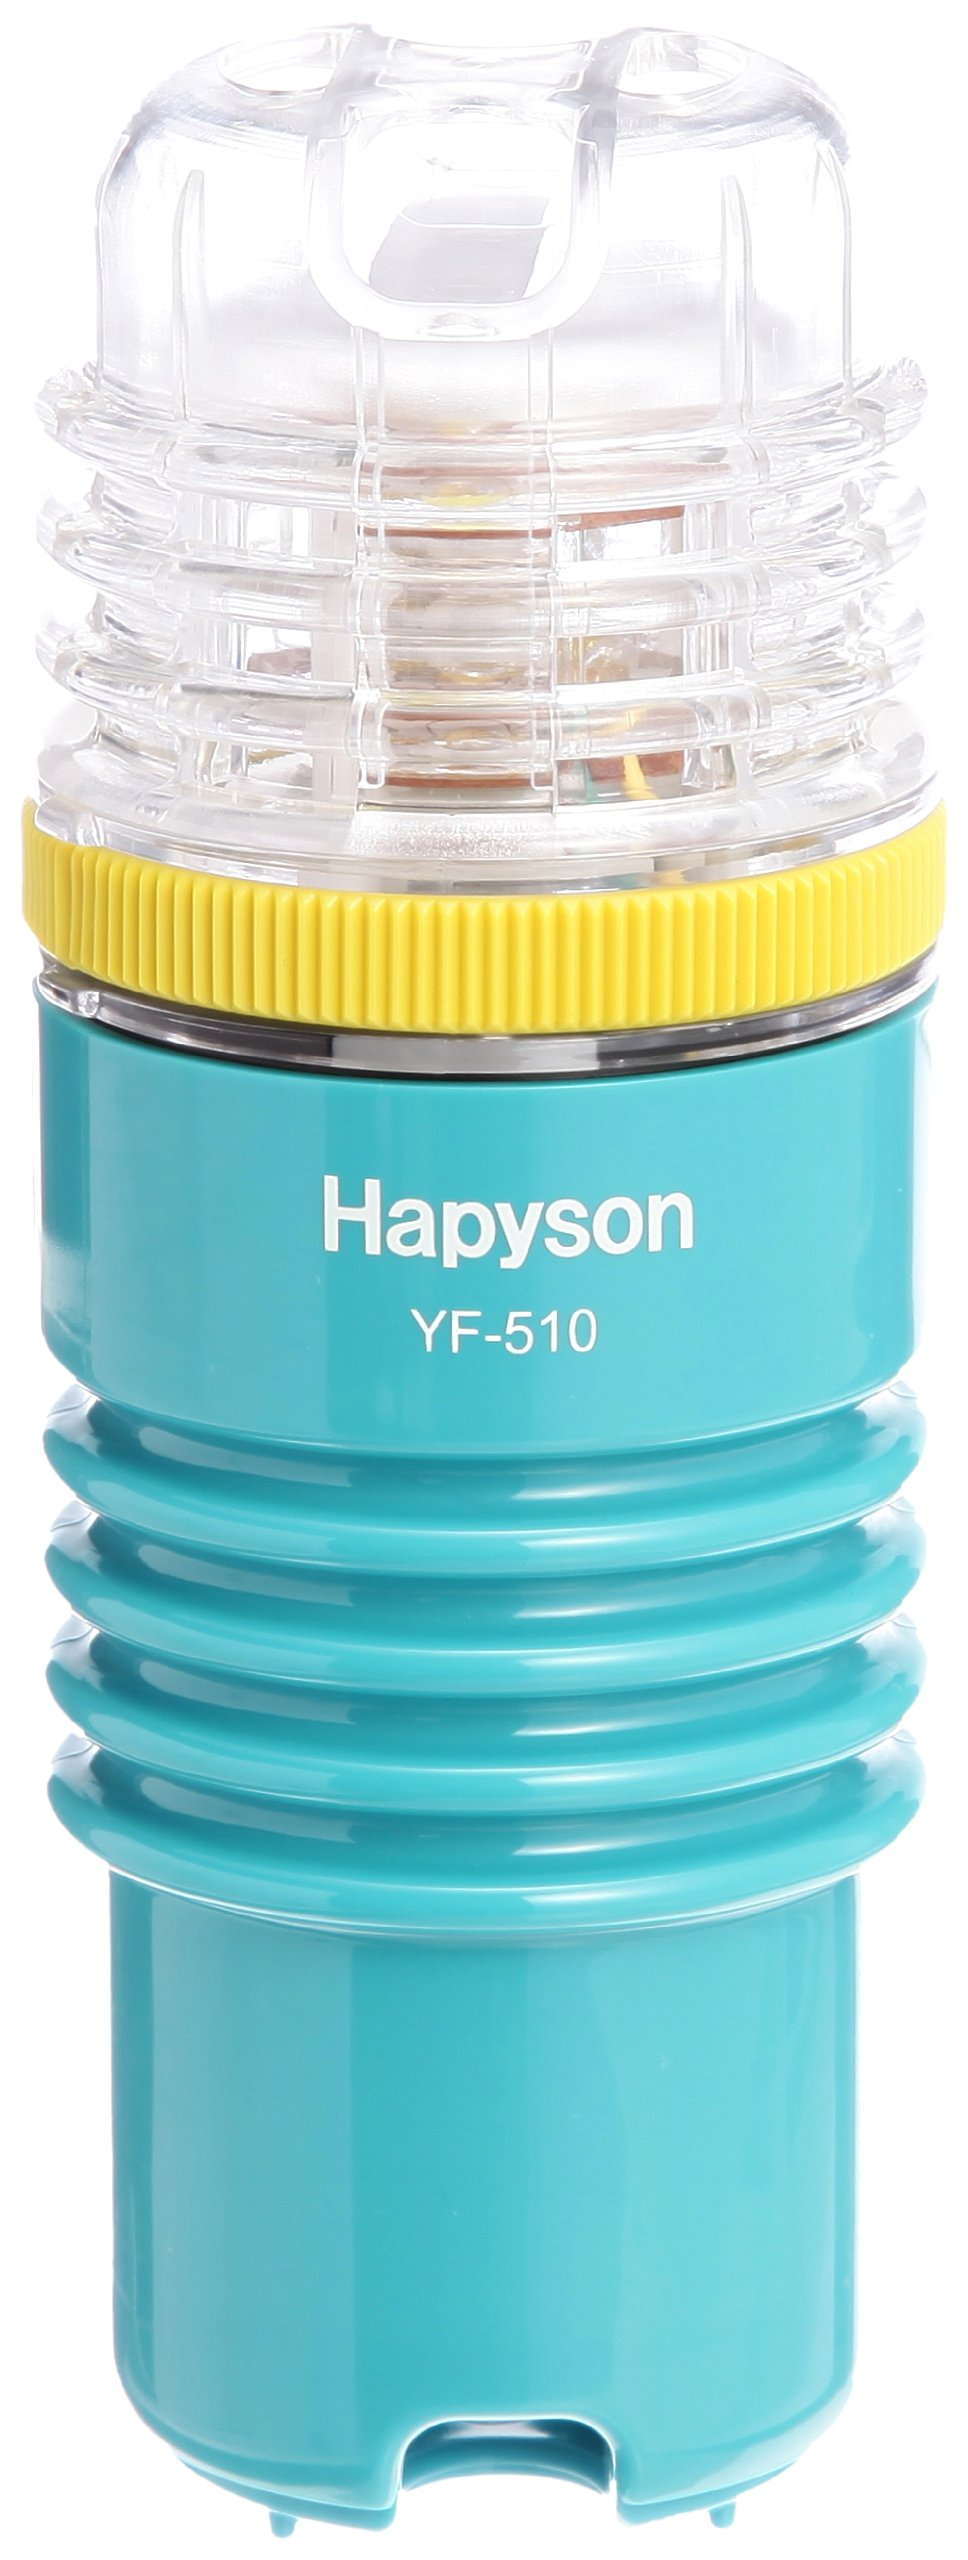 Hapison (Hapyson) battery-LED underwater fishing light mini YF-510